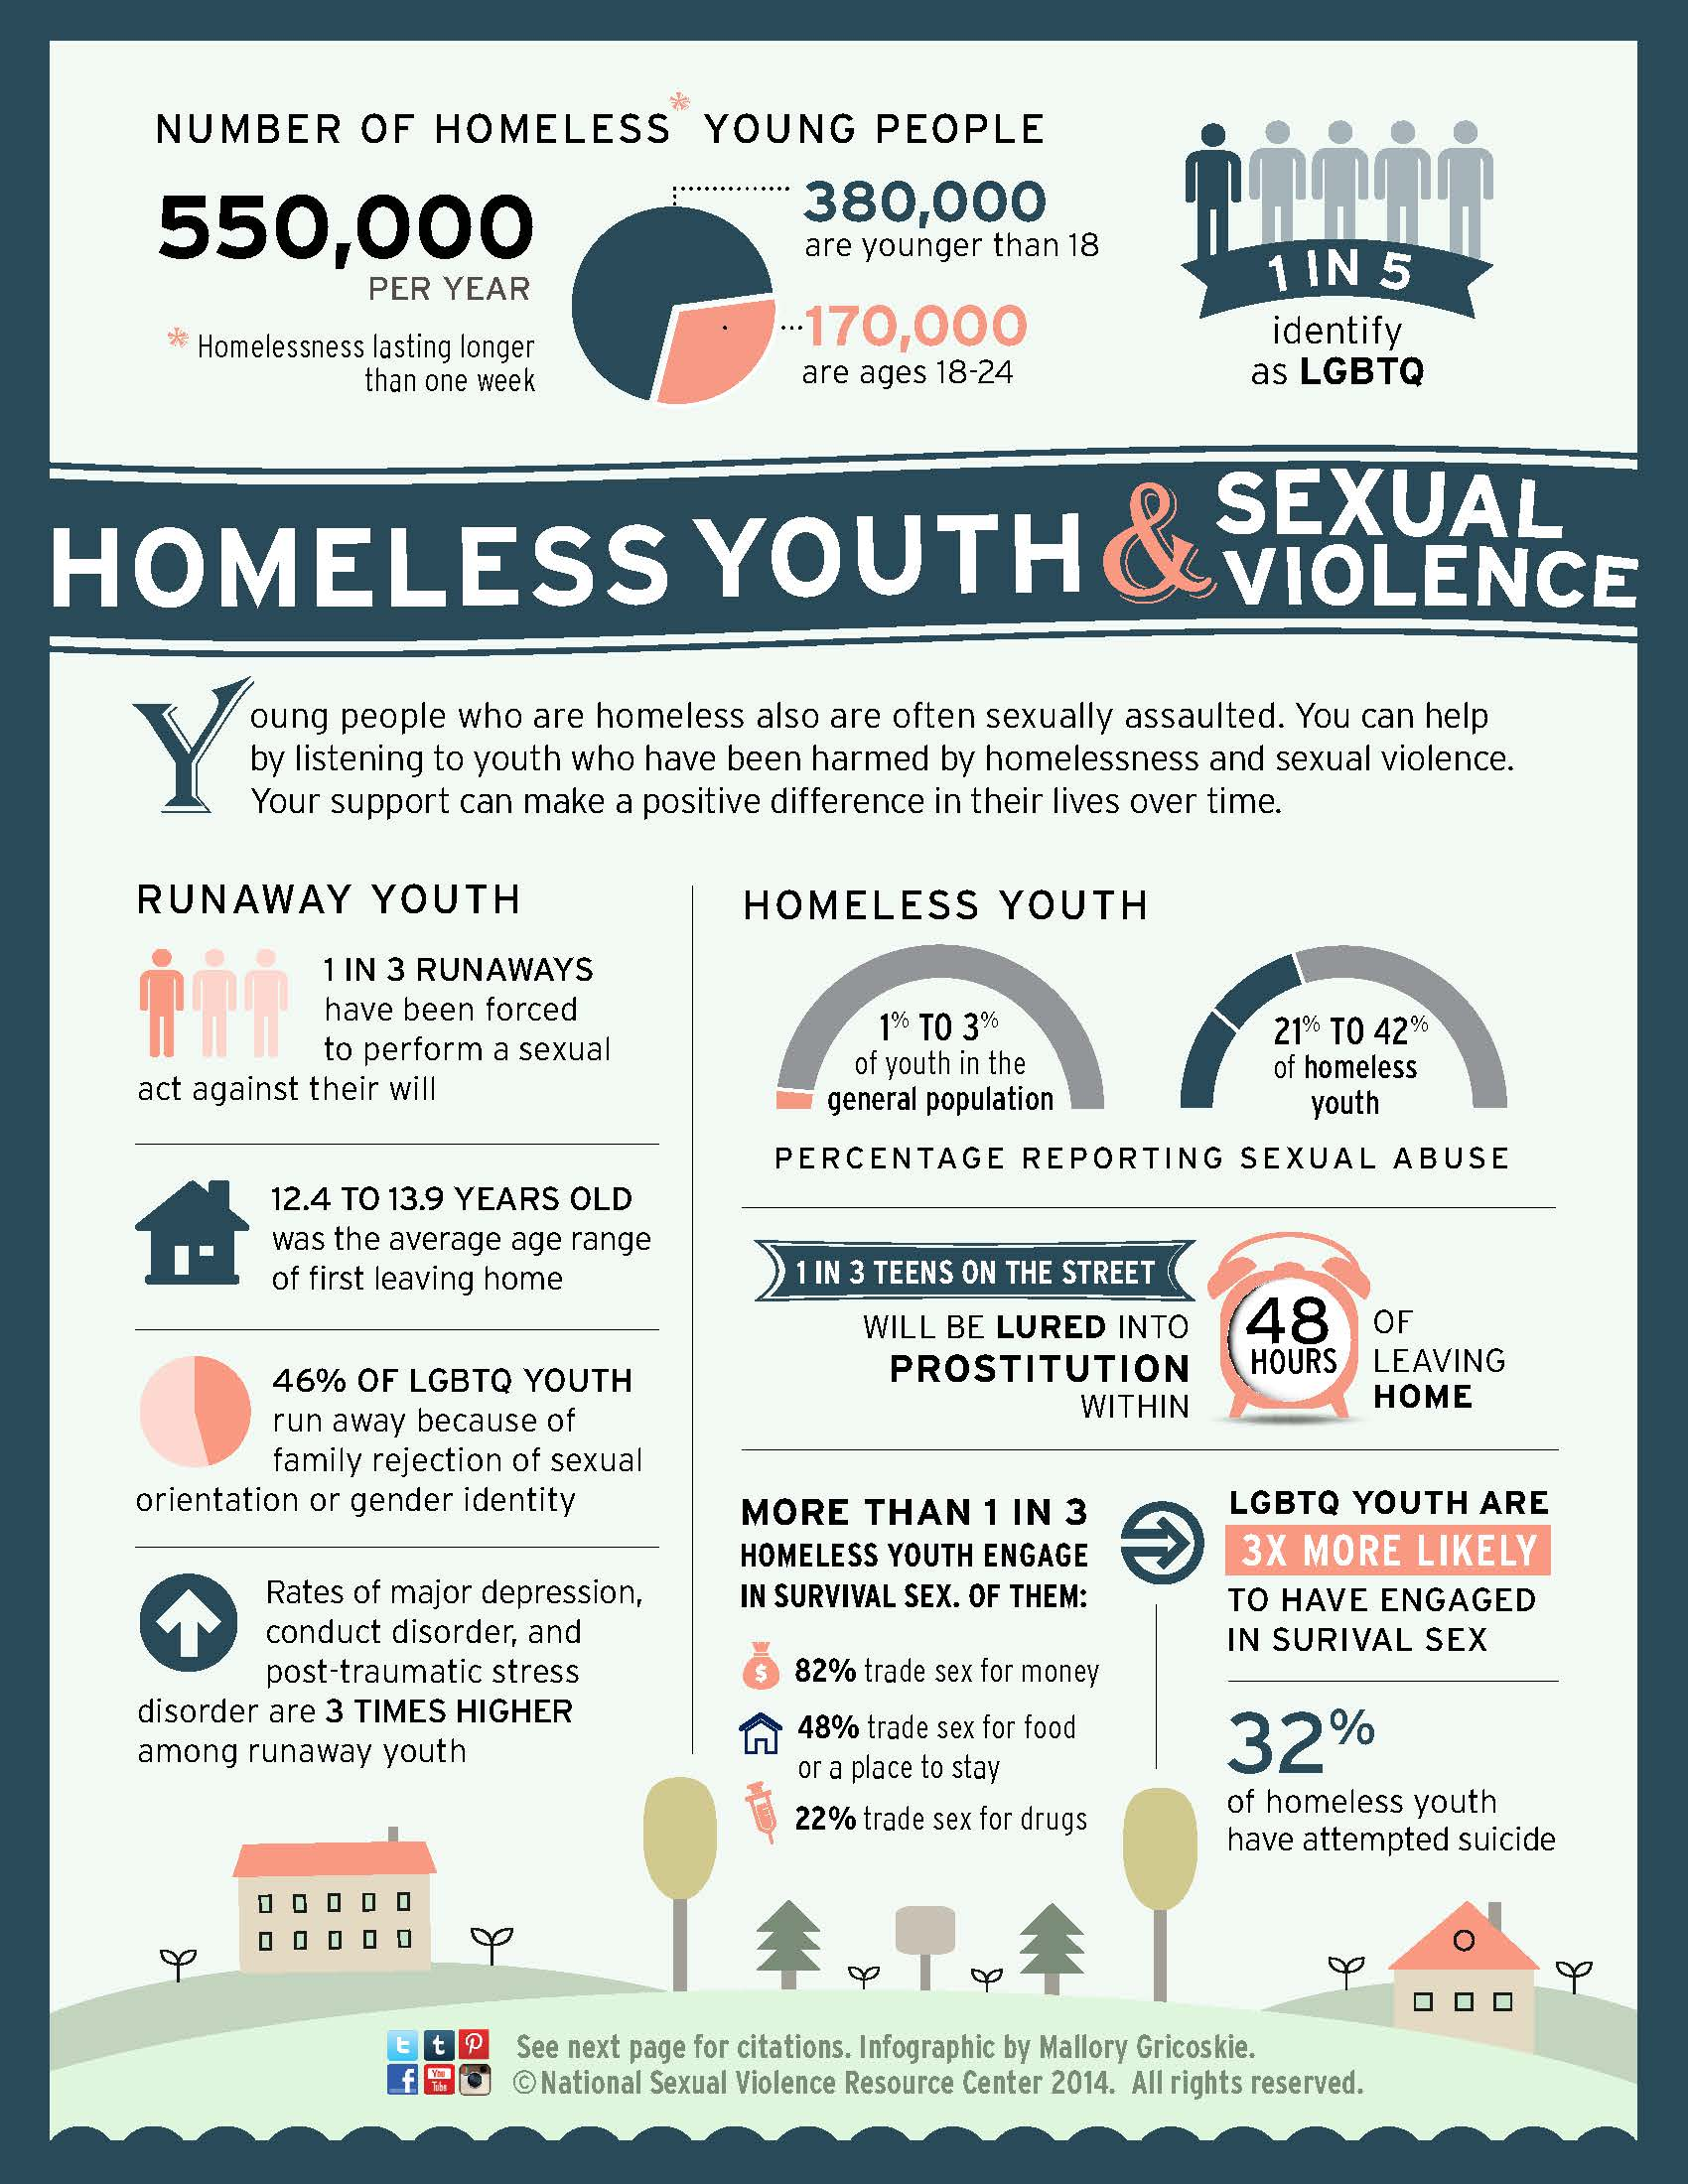 homeless youth targeted by violence and crime Youth homelessness is one of the main concerns in many of the developed as well as some developing nations due to issues of power, violence and social control associated with the homeless youth (milburn et al 2007 & hatty et al 1996.